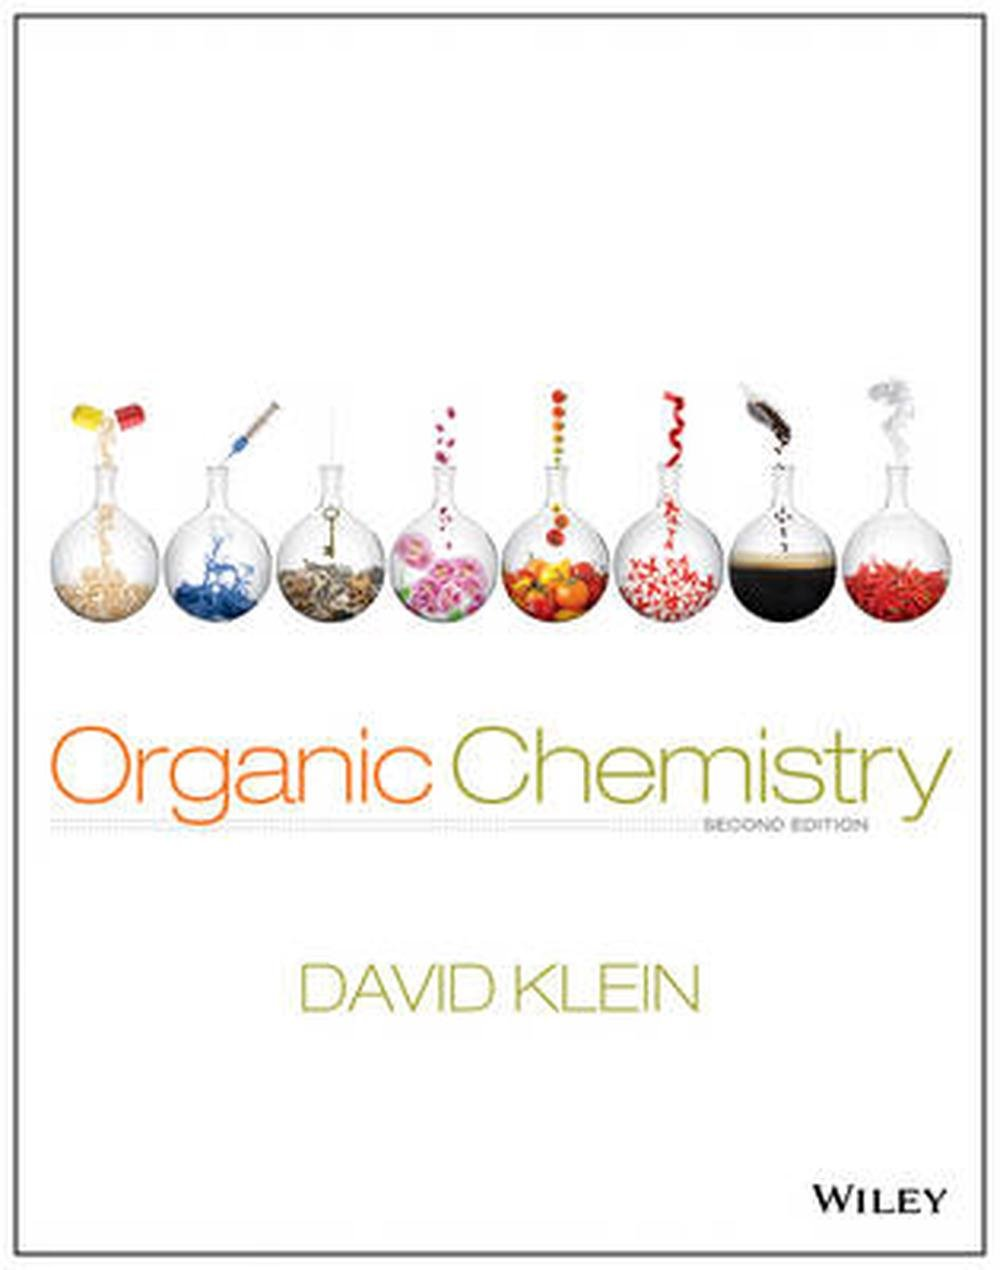 Organic Chemistry by David R  Klein, Hardcover